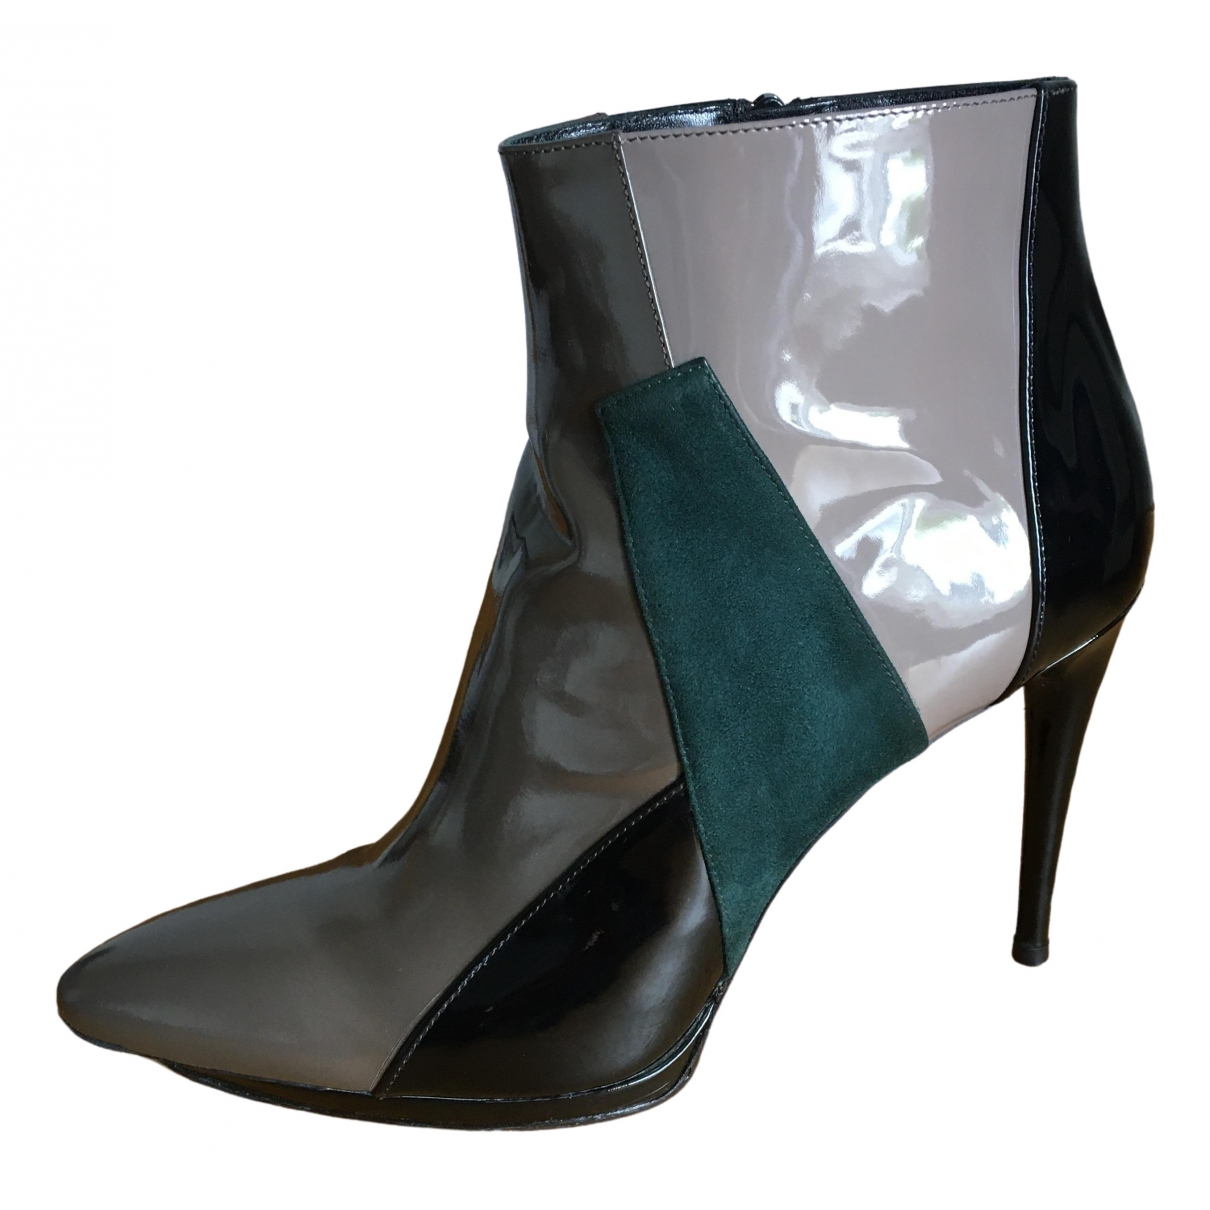 Balenciaga \N Multicolour Patent leather Ankle boots for Women 40 EU